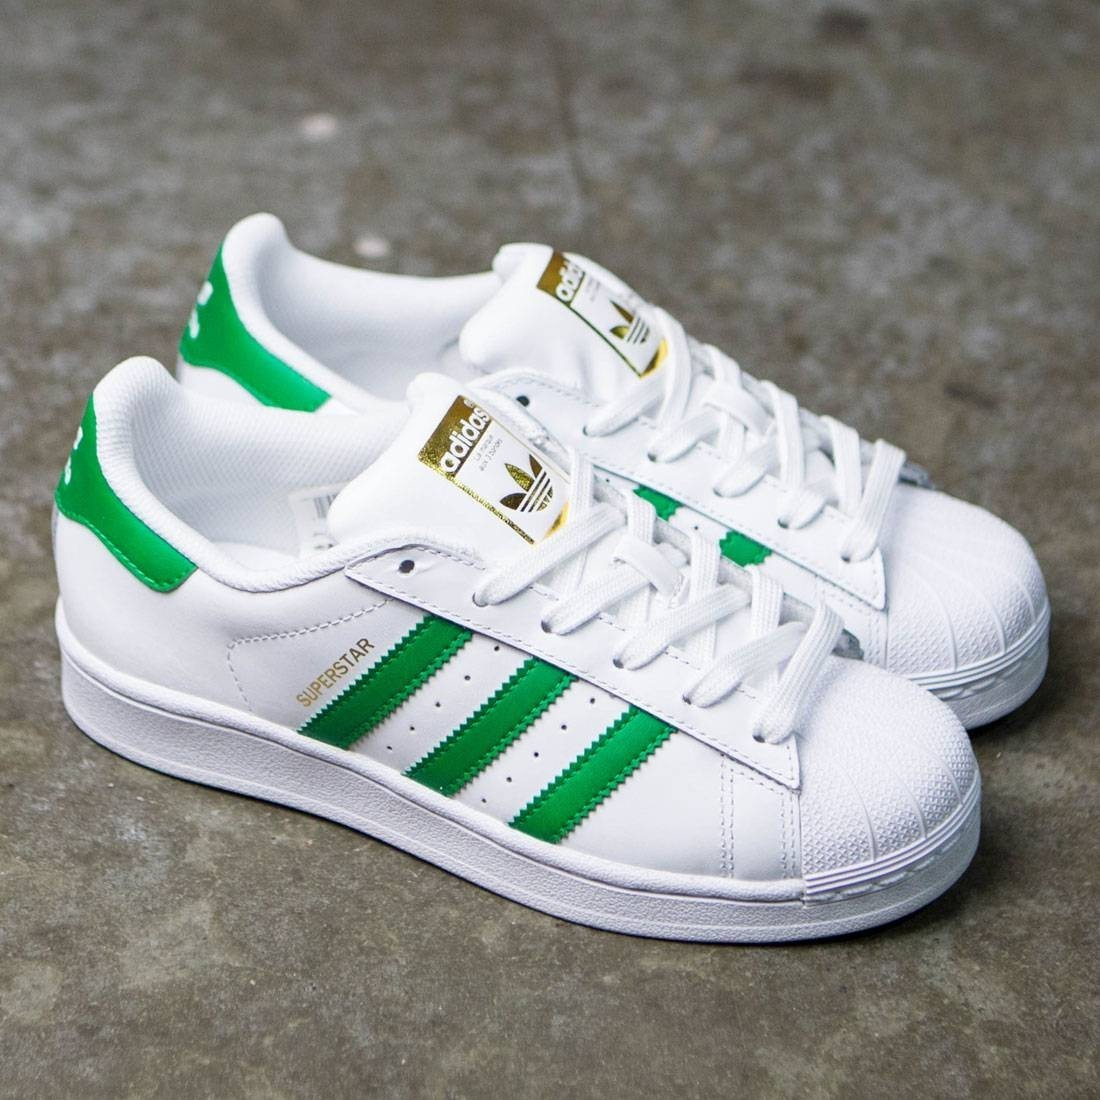 【送料無料】ADIDAS WOMEN SUPERSTAR W WHITE